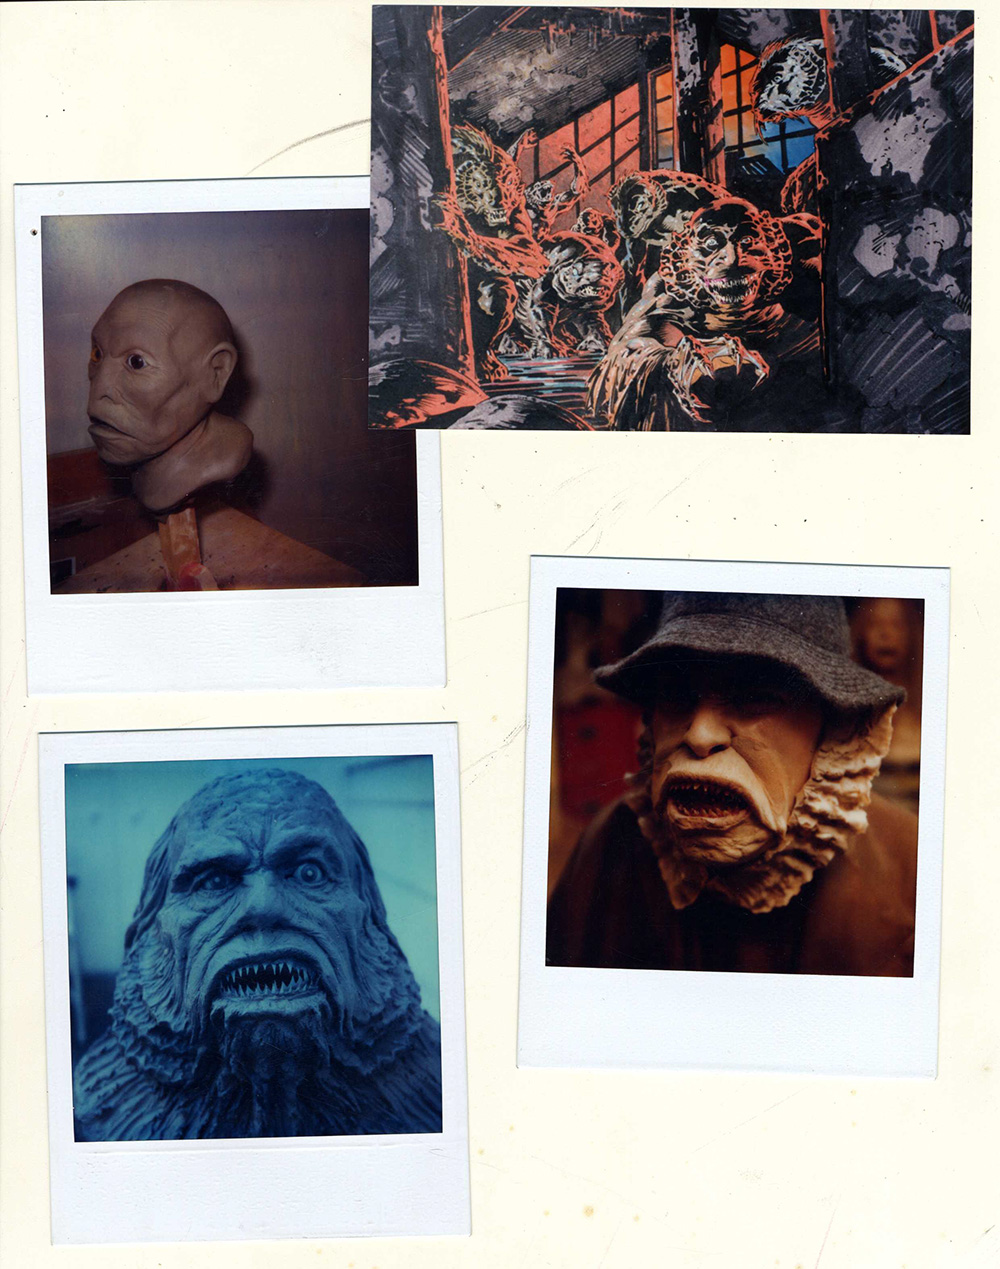 A number of Polaroids documenting makeup effects used in Dagon.